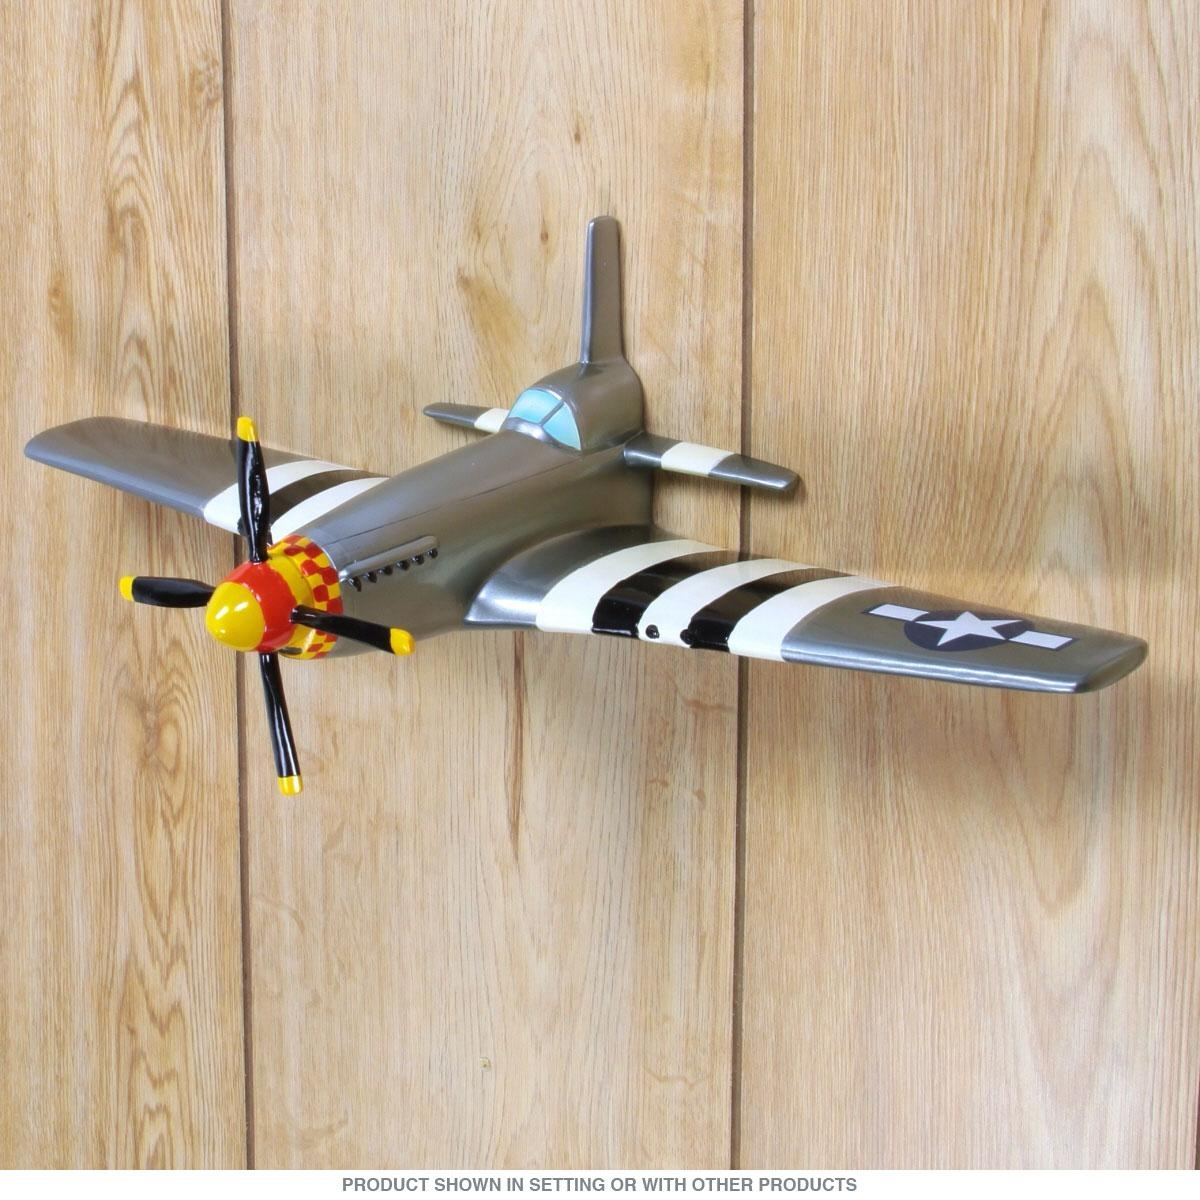 20 Collection of Metal Airplane Wall Art